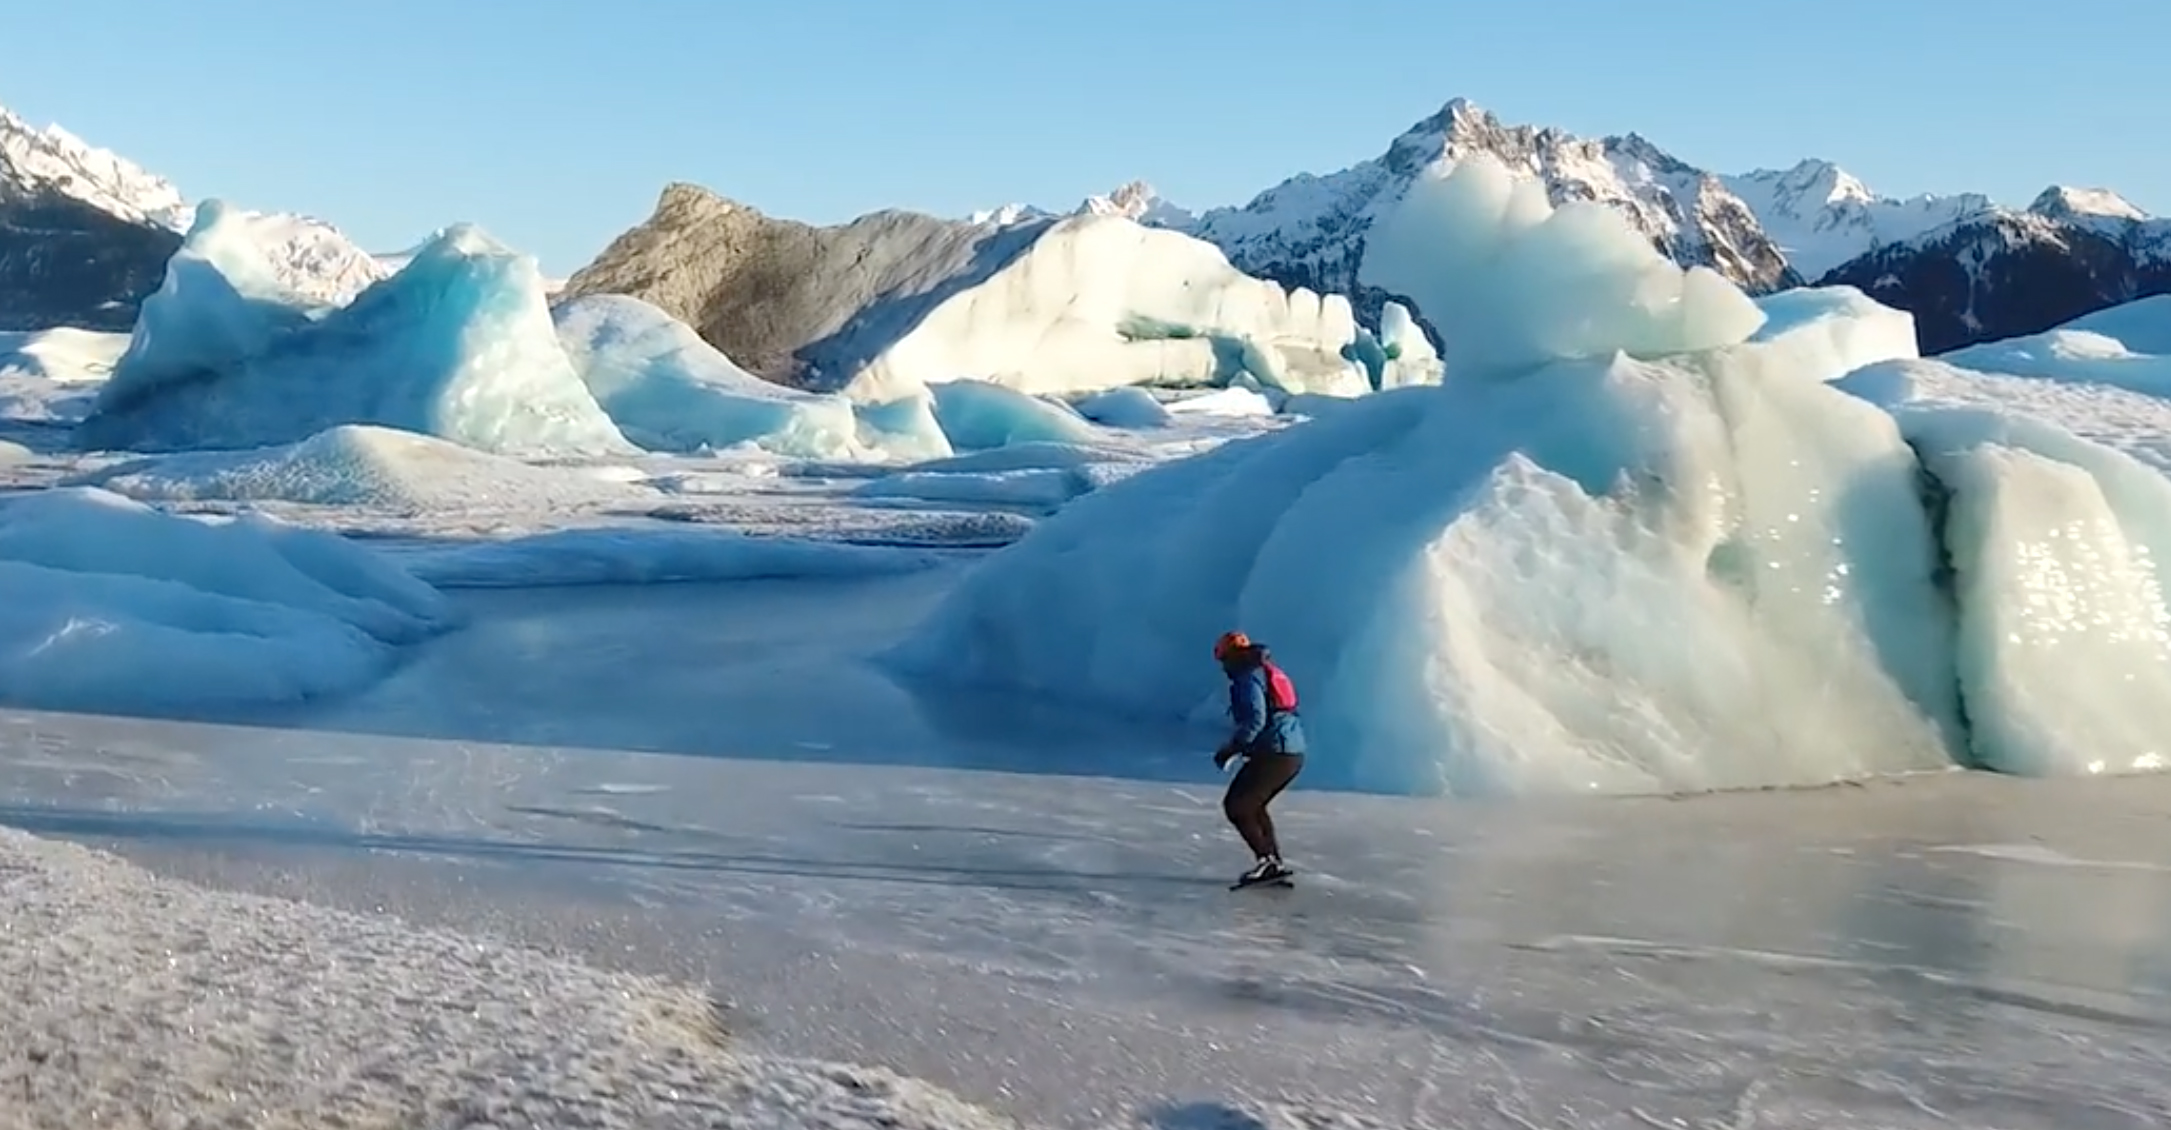 Ice Skating Alaskan Backcountry Is The Stuff Of Dreams